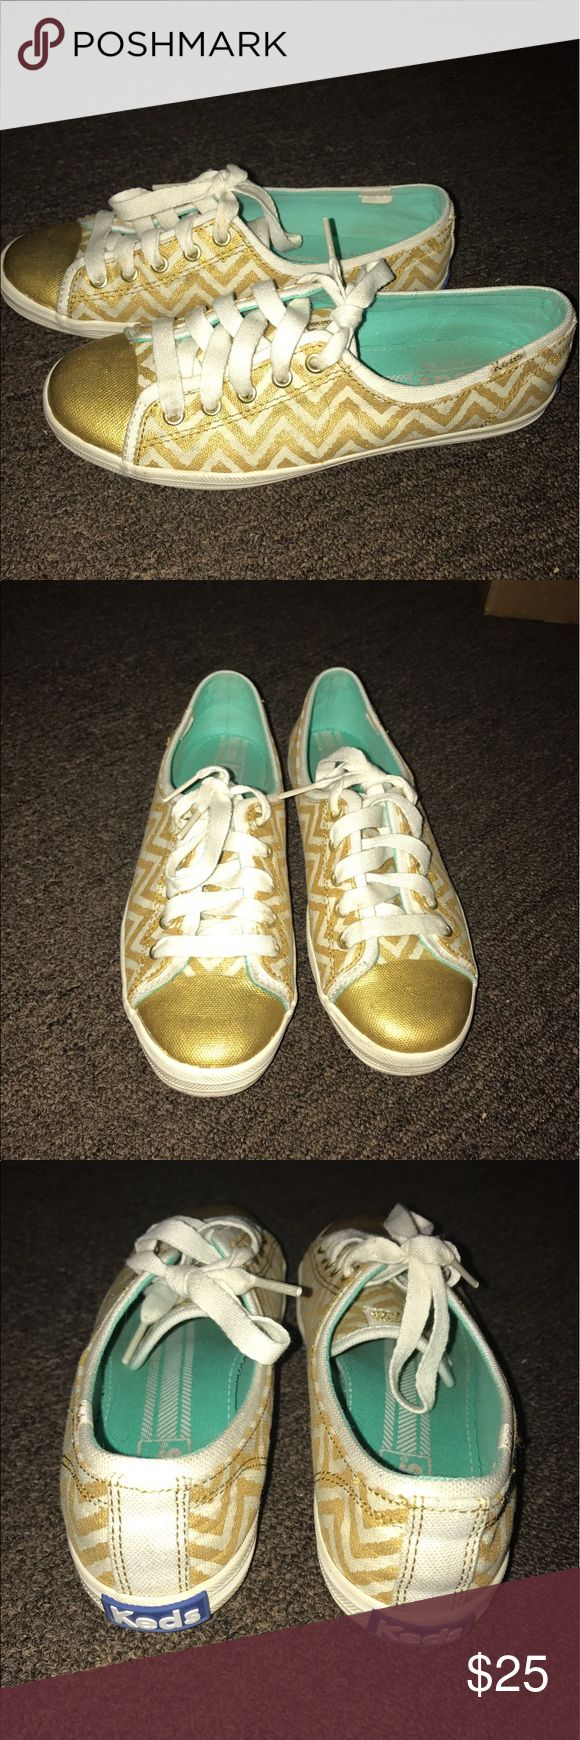 Keds gold chevron shoes size 5 Gently used keds shoes. Women's size 5. Has a gold chevron print. Good condition. Keds Shoes Sneakers